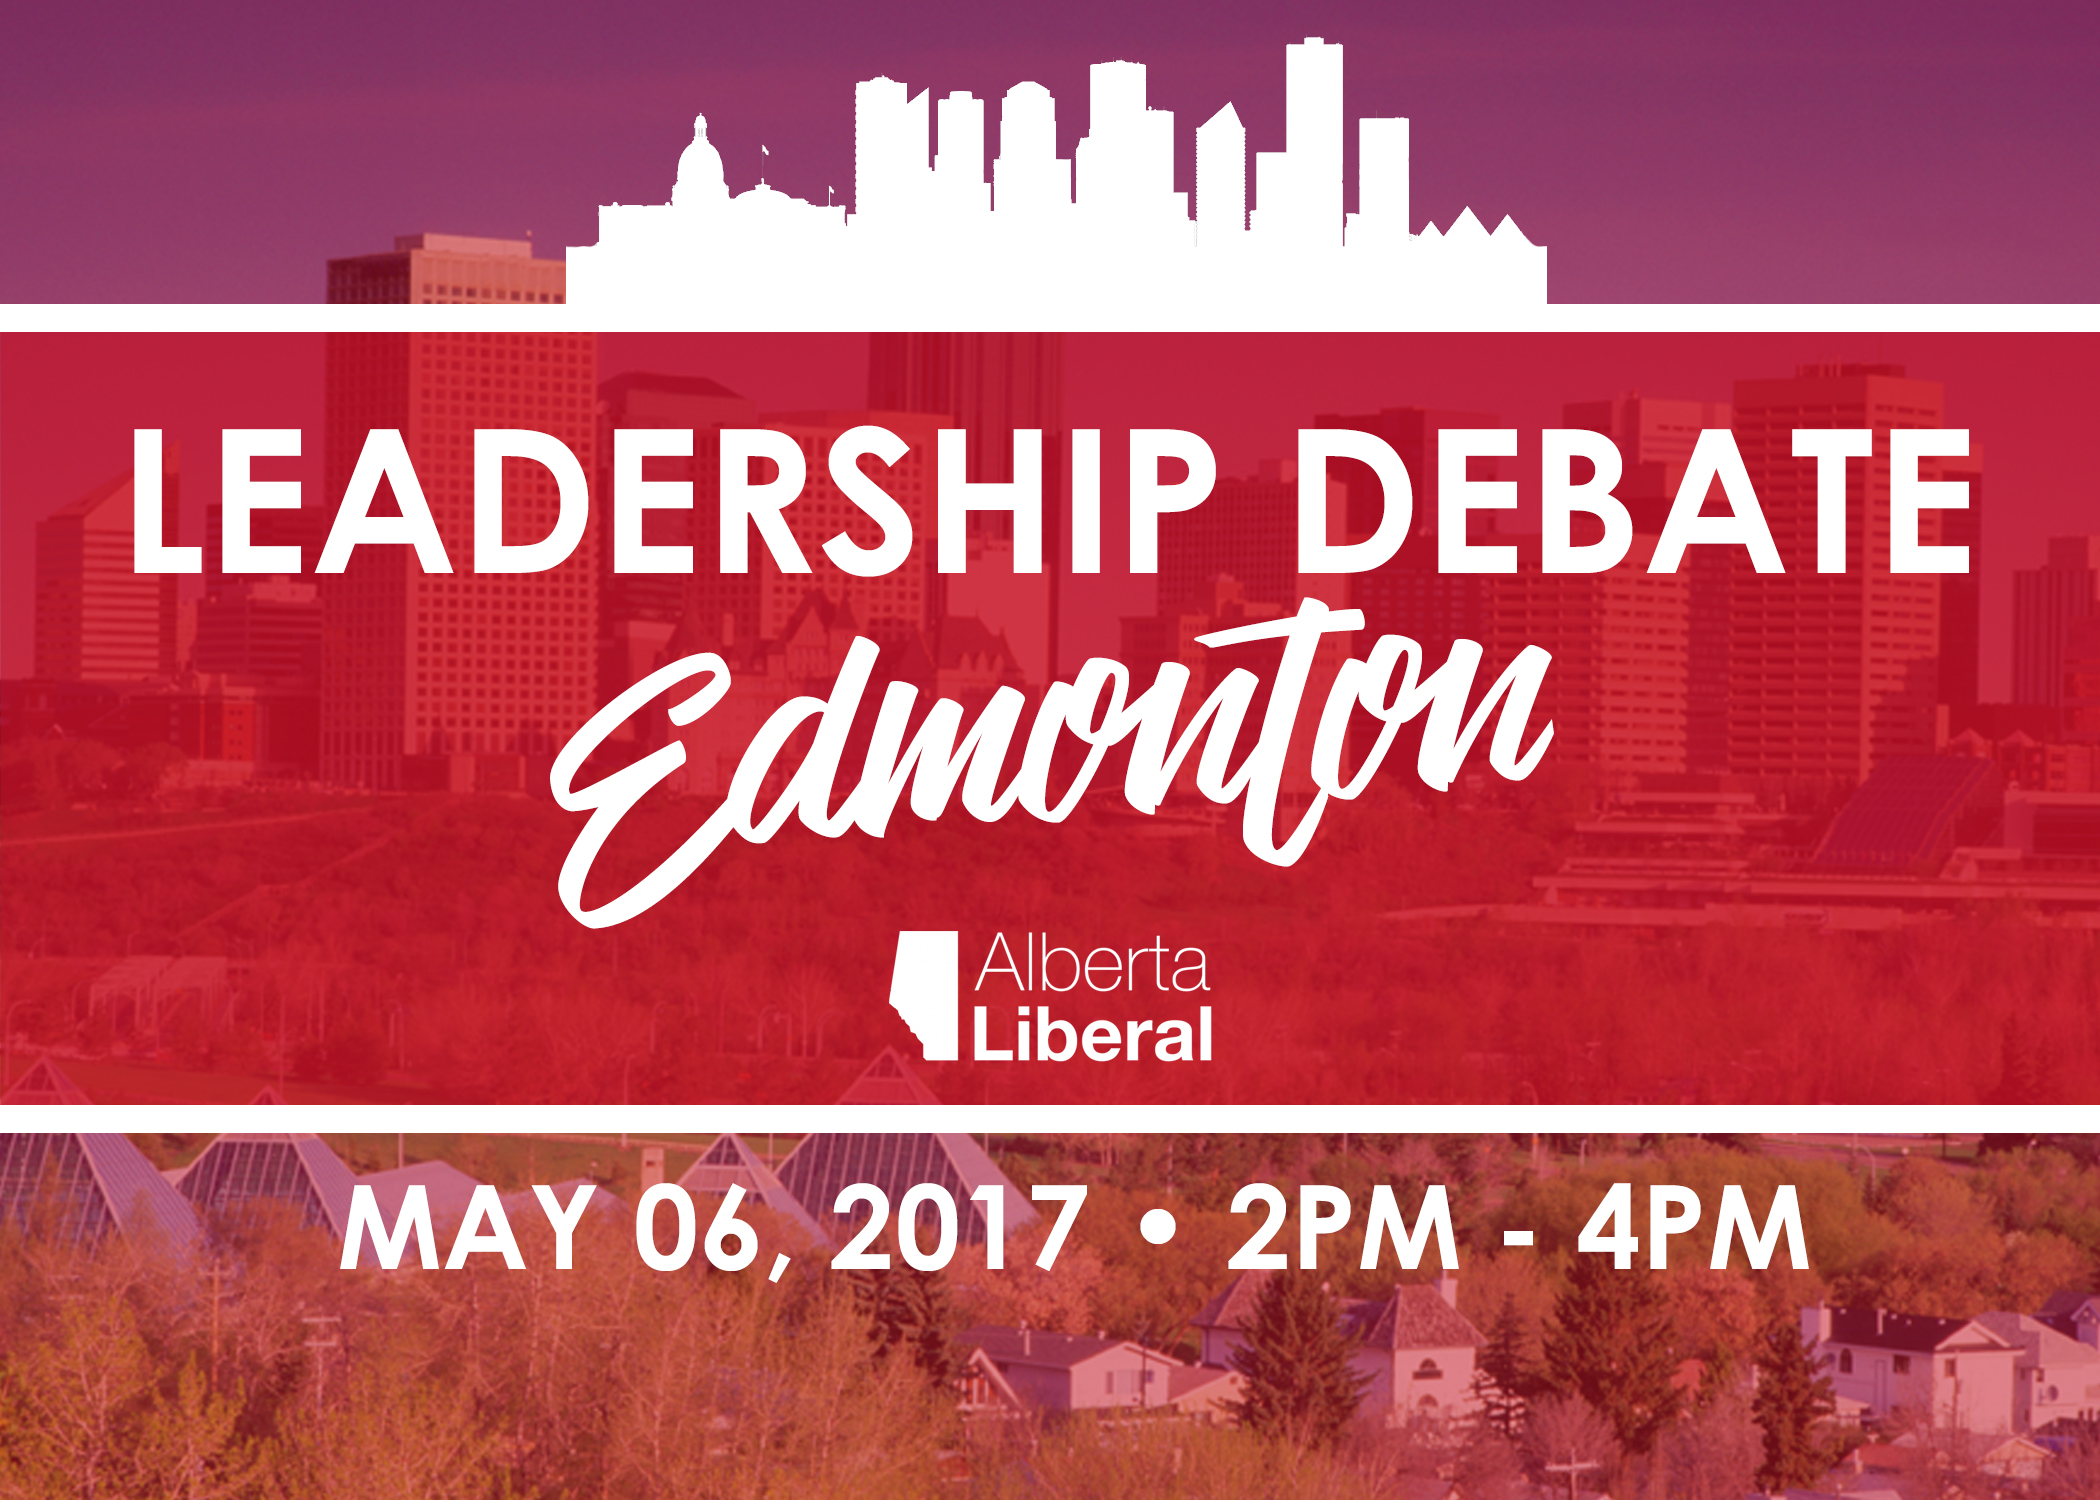 Edmonton_Leadership_Debate_3.jpg